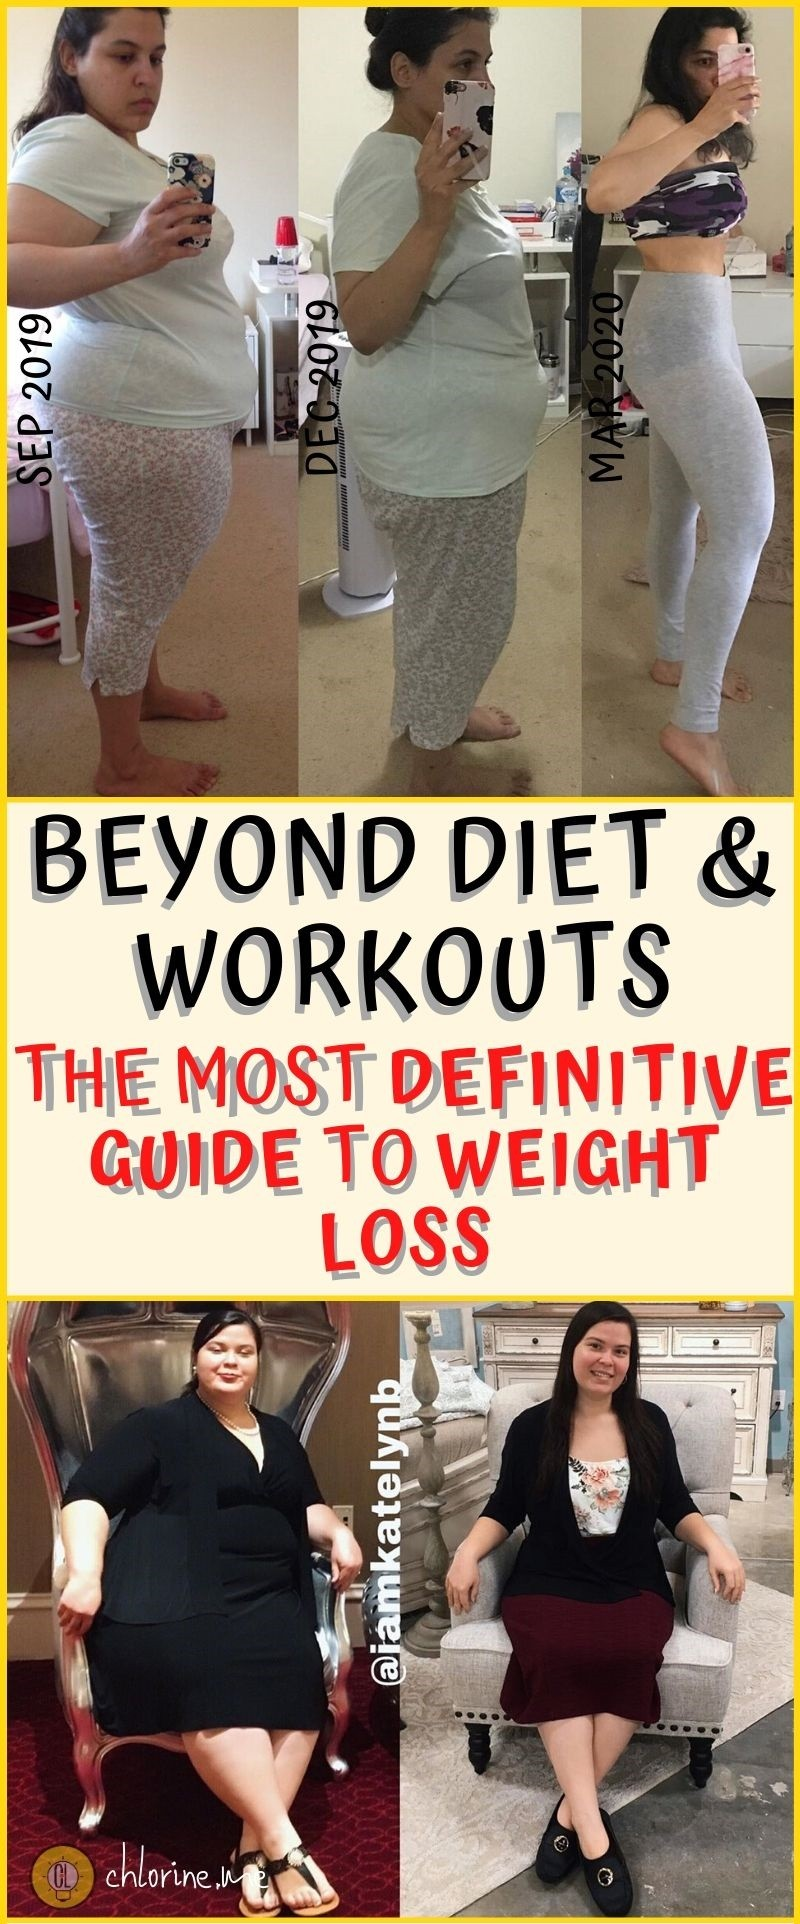 the most definitive guide to weight loss (2)